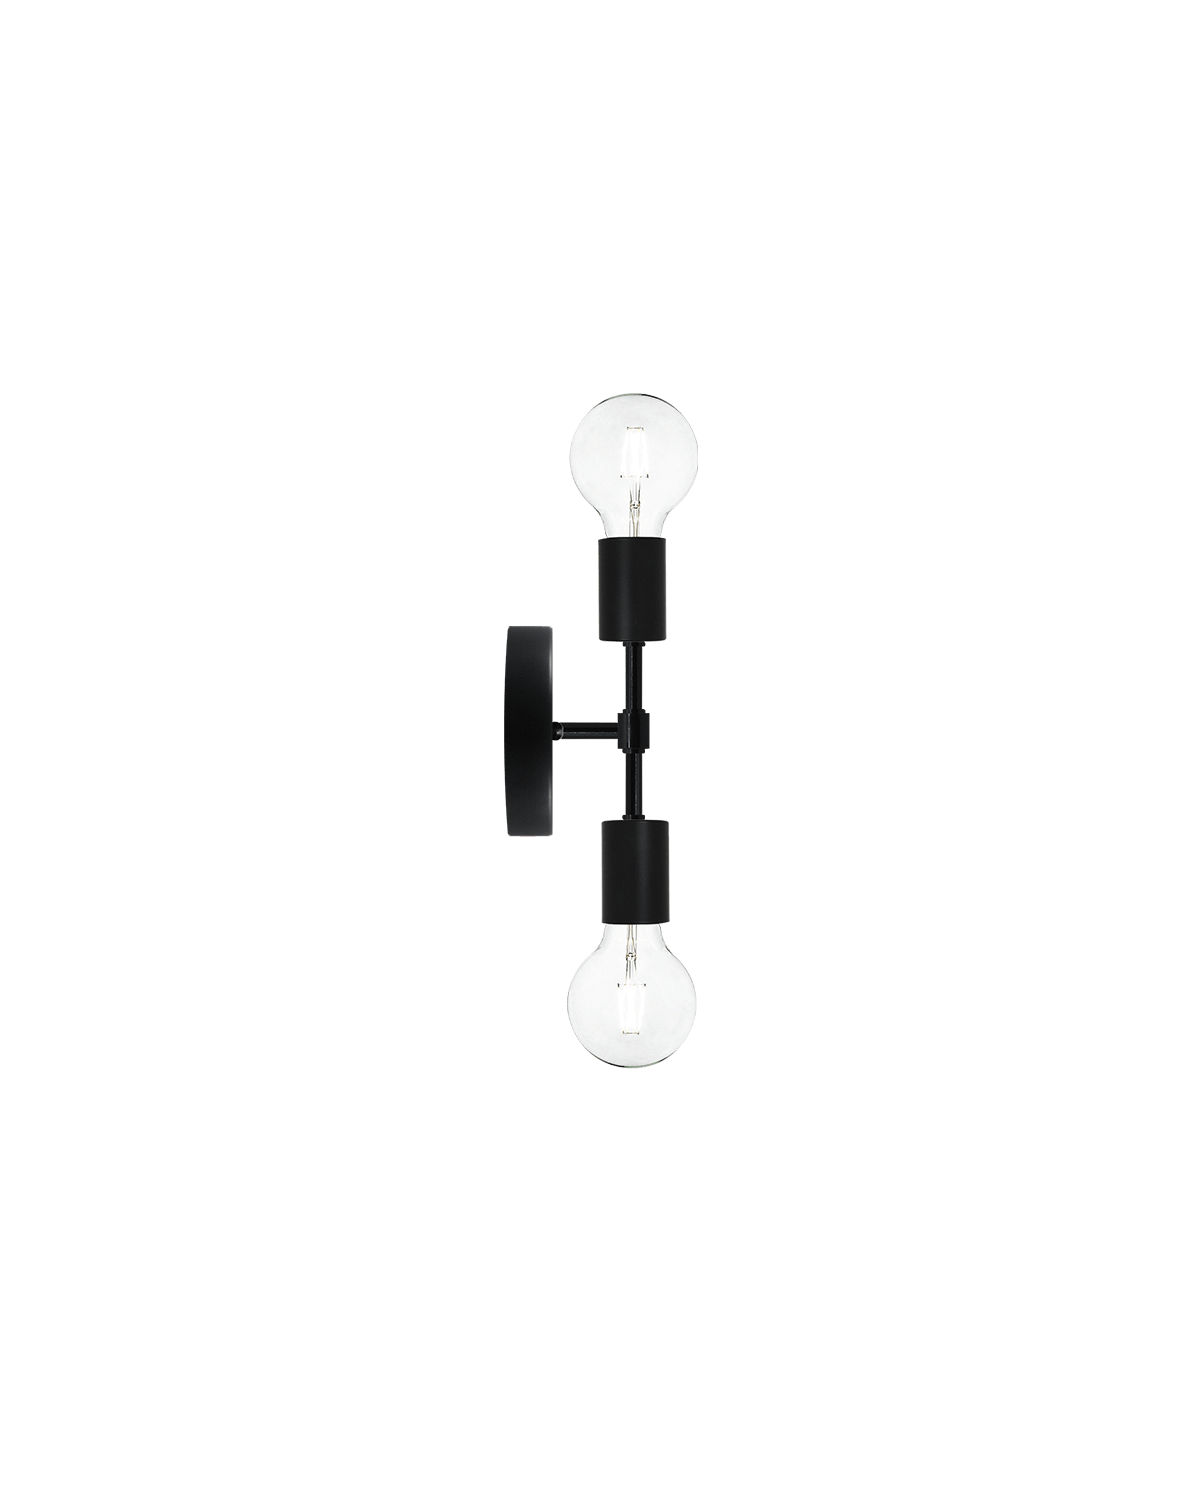 Double Wall Sconce: Black Hangout Lighting